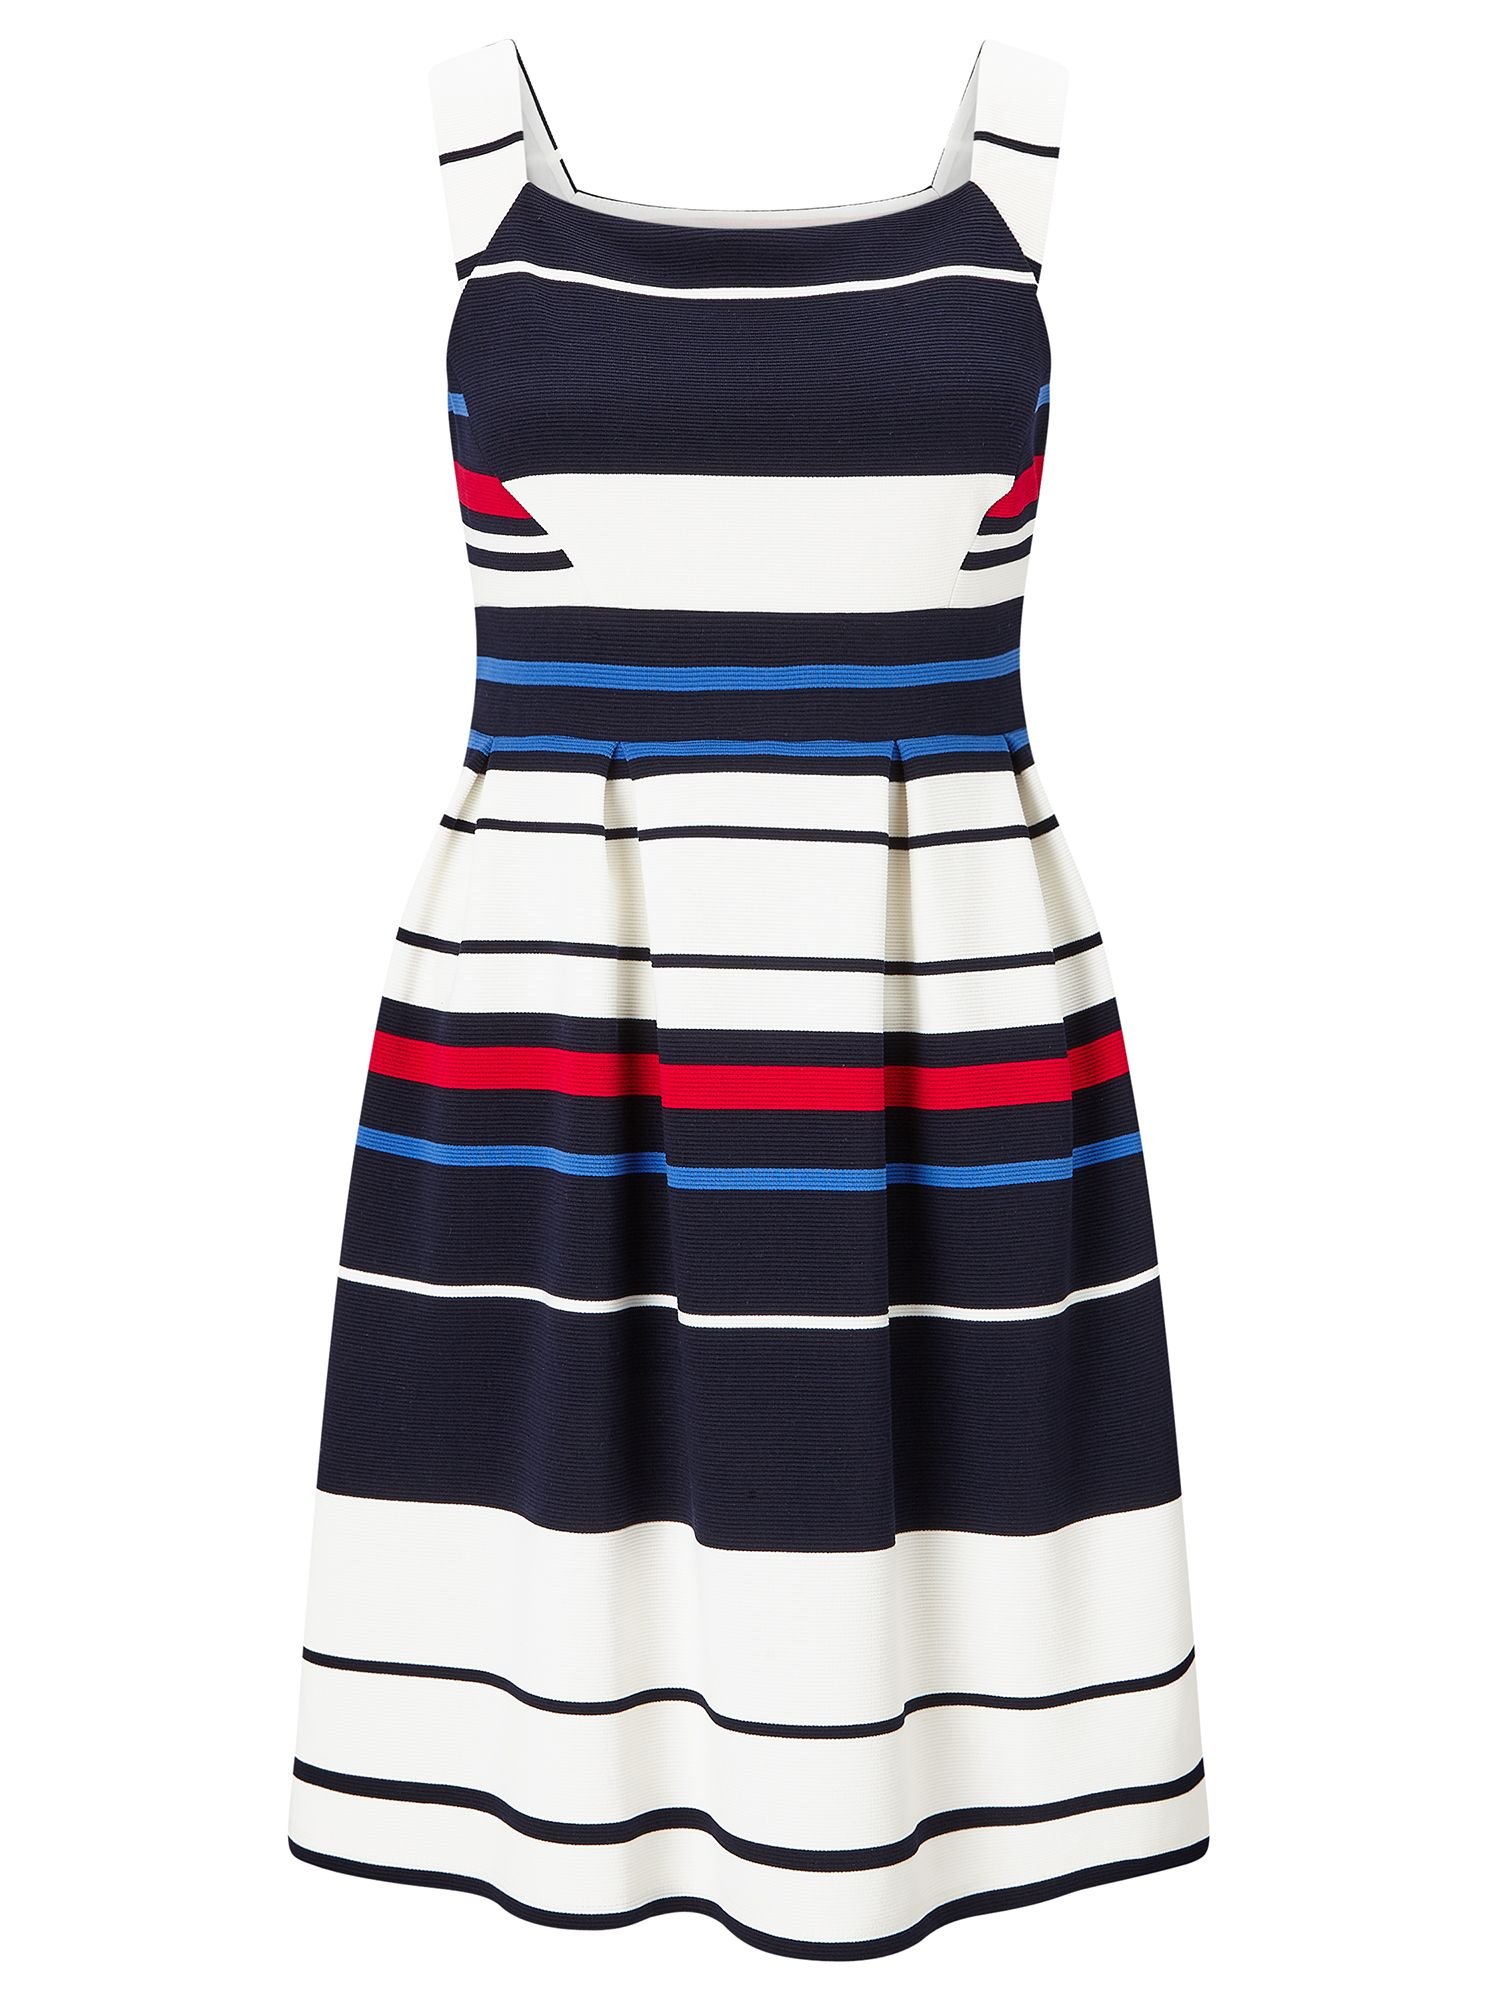 Adrianna Papell Stripe Dress, Multi-Coloured